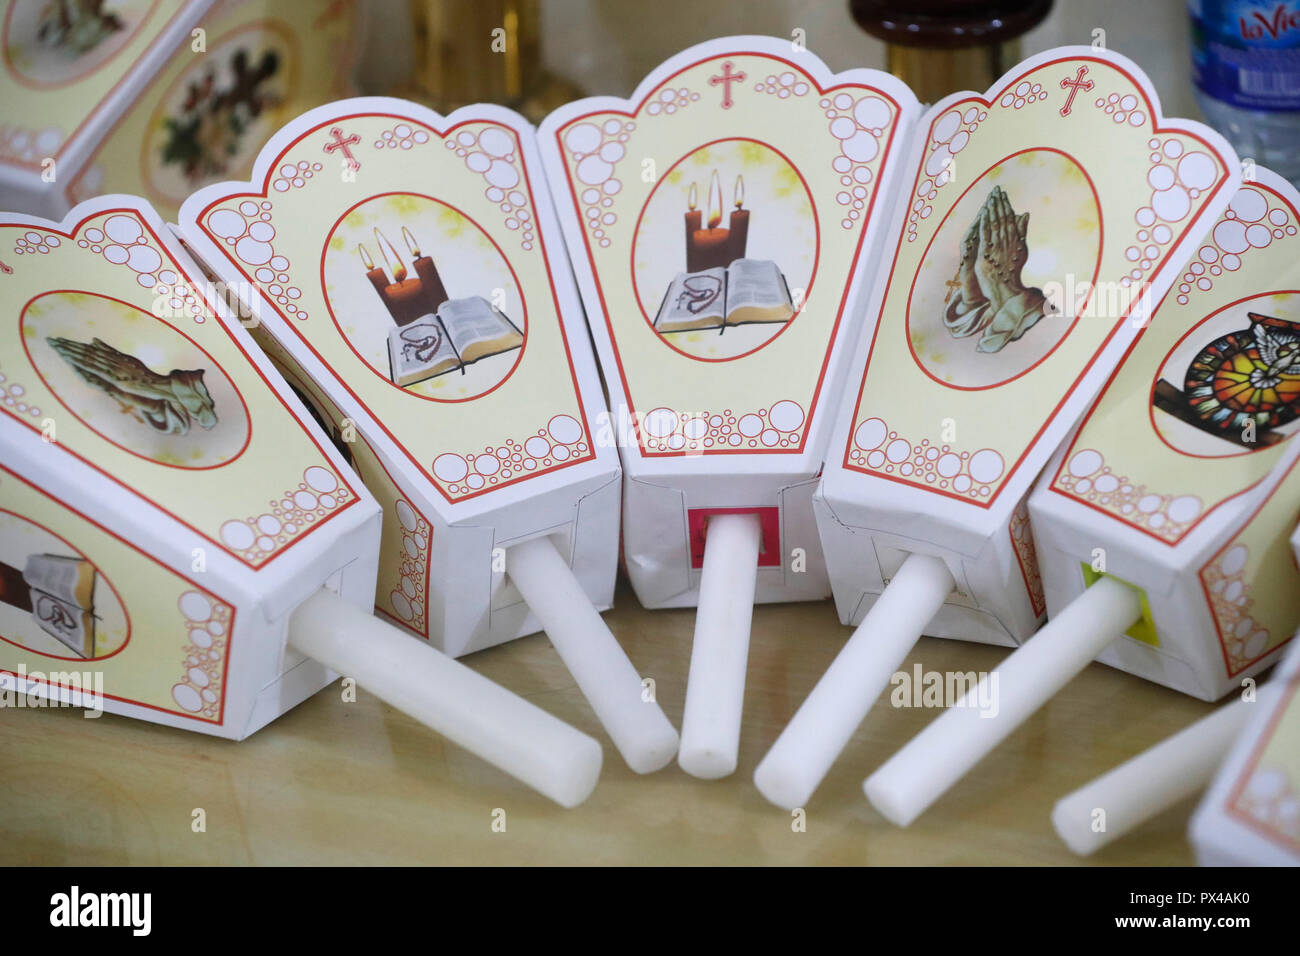 Gia Dinh Church. Church candles for procession. Ho Chi Minh City. Vietnam. Stock Photo